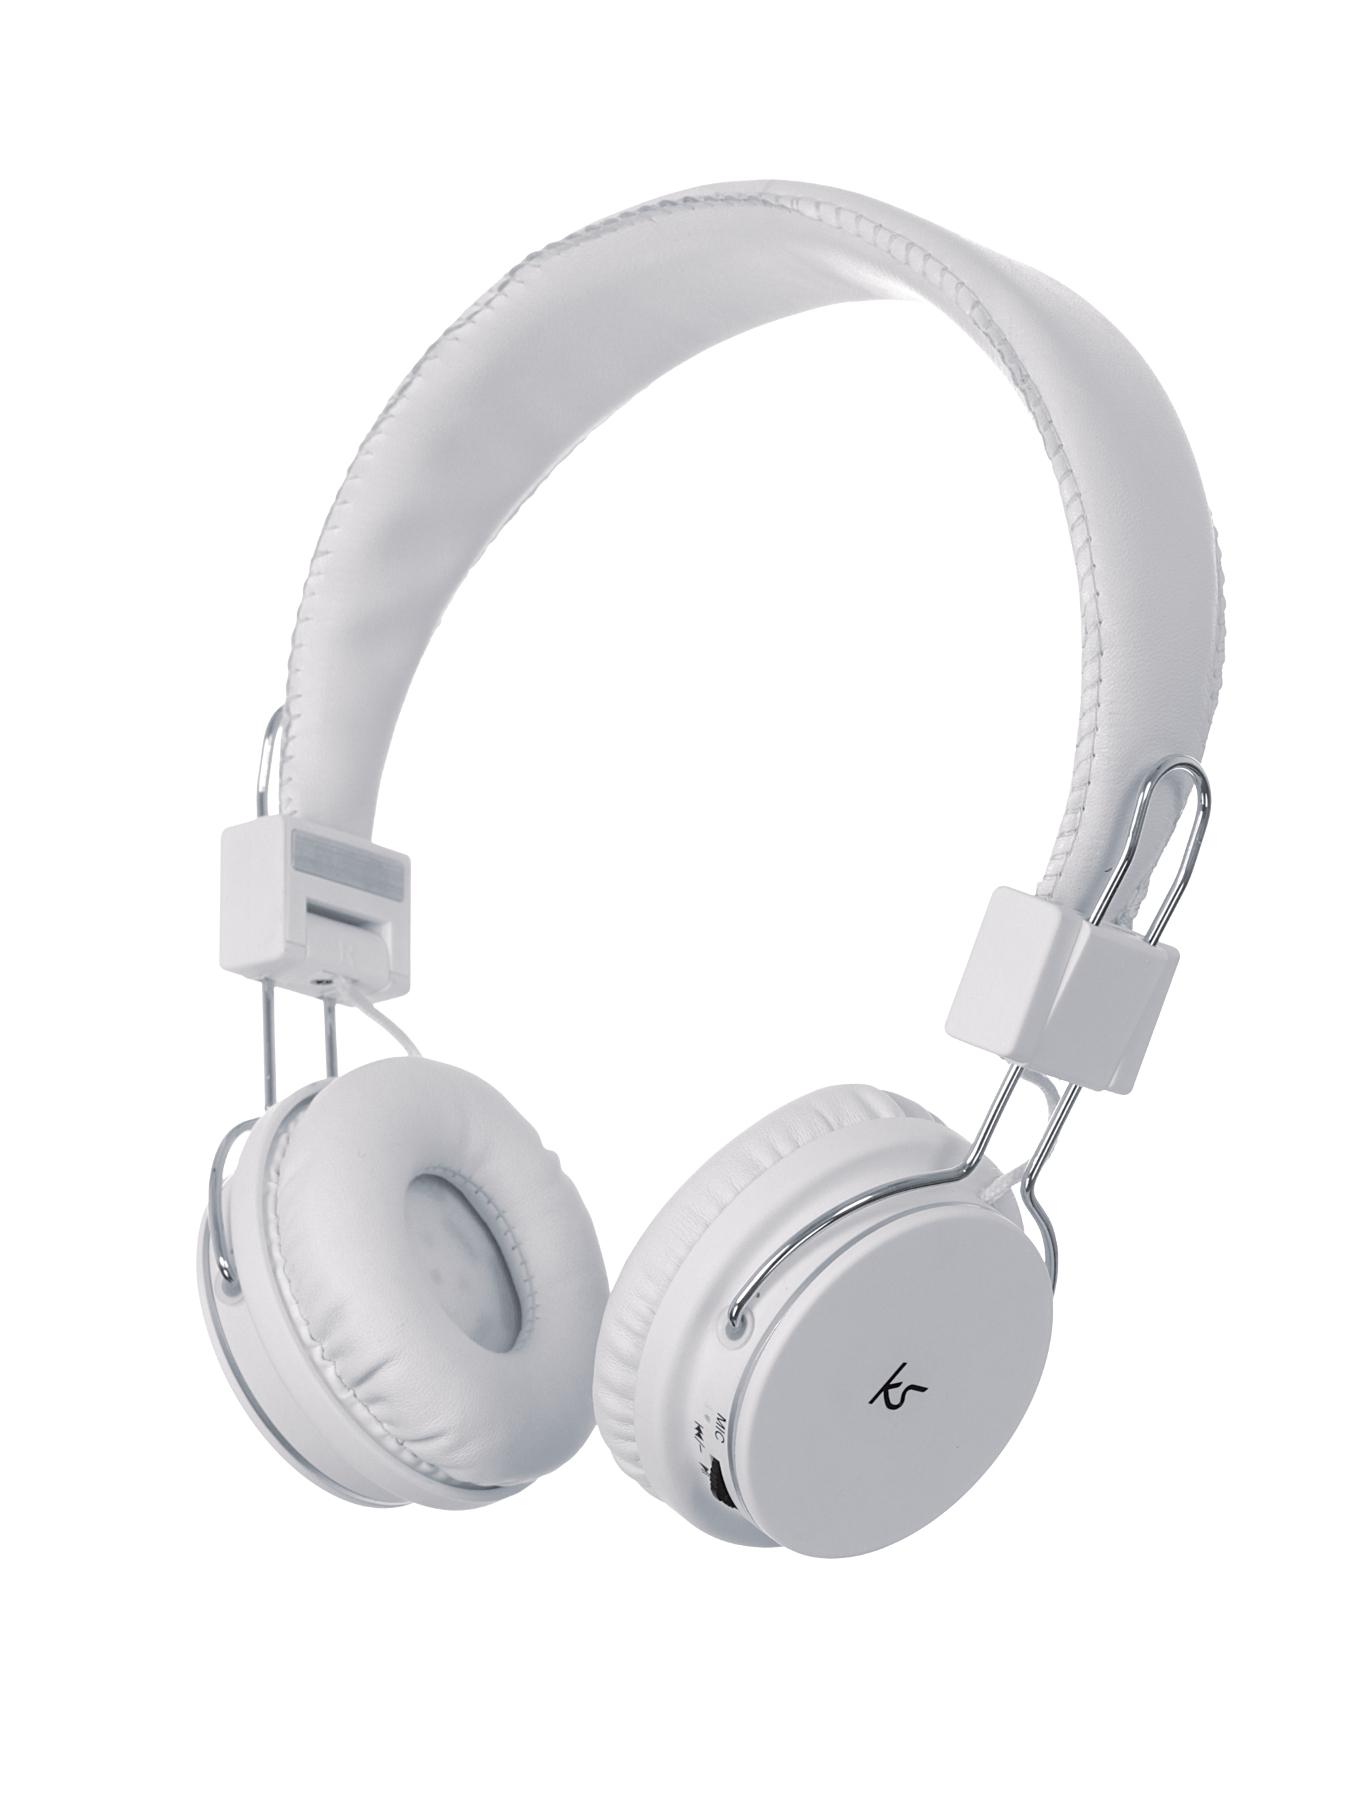 Kitsound Manhattan Over Ear Headphones With Mic - White